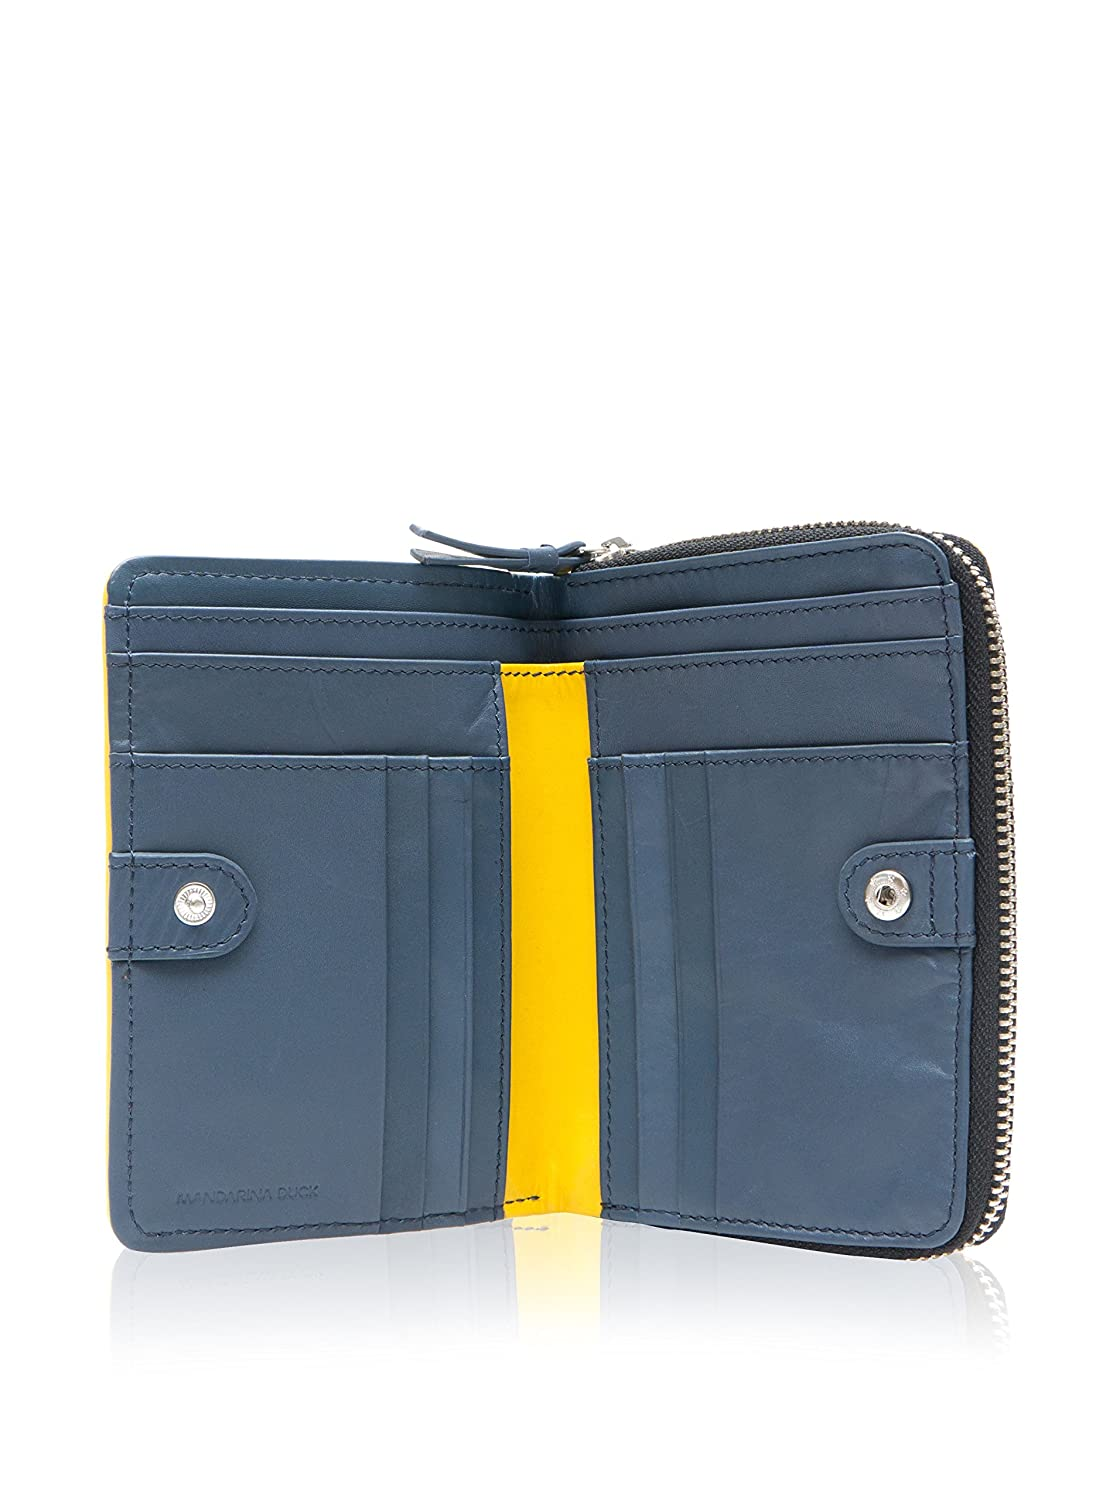 Mandarina Duck Monedero, Dark Denim (Azul) - 152IUP0414B ...